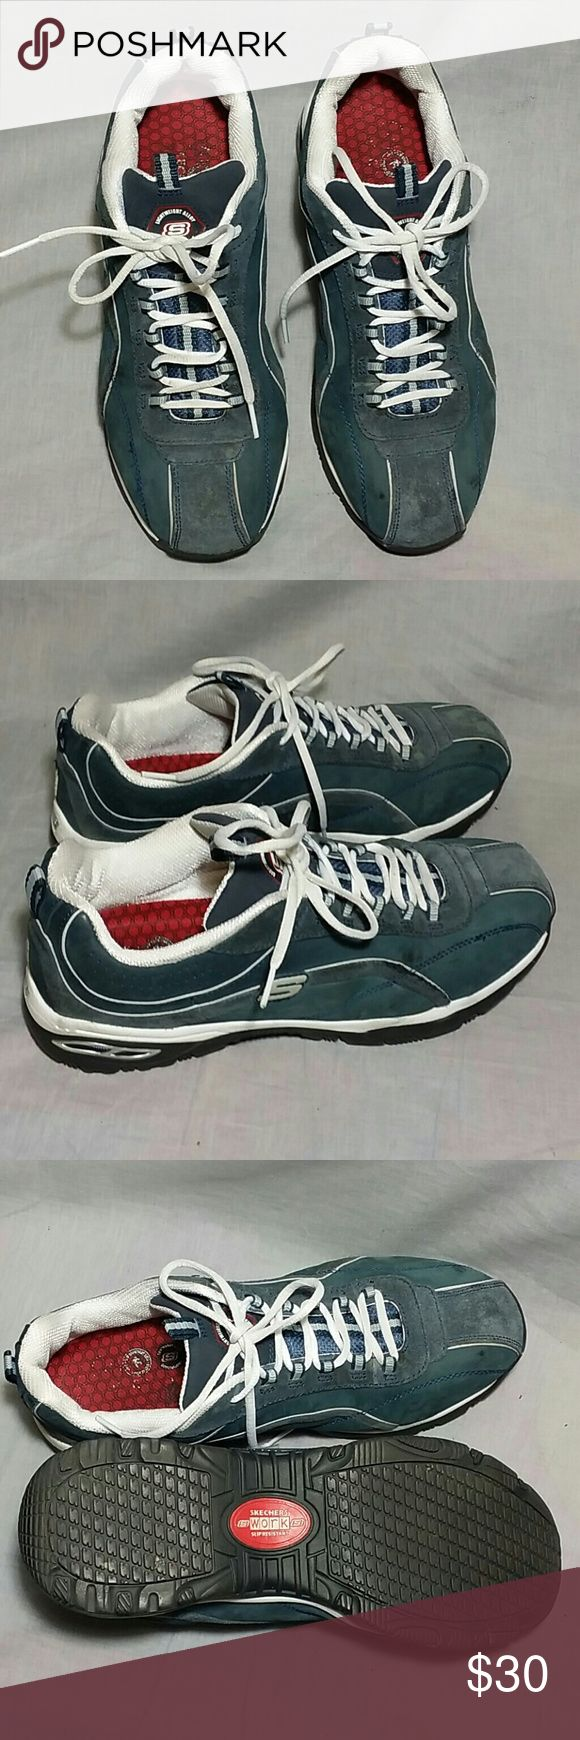 Women's Skechers SAFETY TOE Shoes 9.5 M leather LIGHT WEIGHT ALLOY SAFETY TOE SERIES WORK SLIP RESISTANT, item is in a good condition. NO PETS AND SMOKE FREE HOME. Skechers  Shoes Athletic Shoes